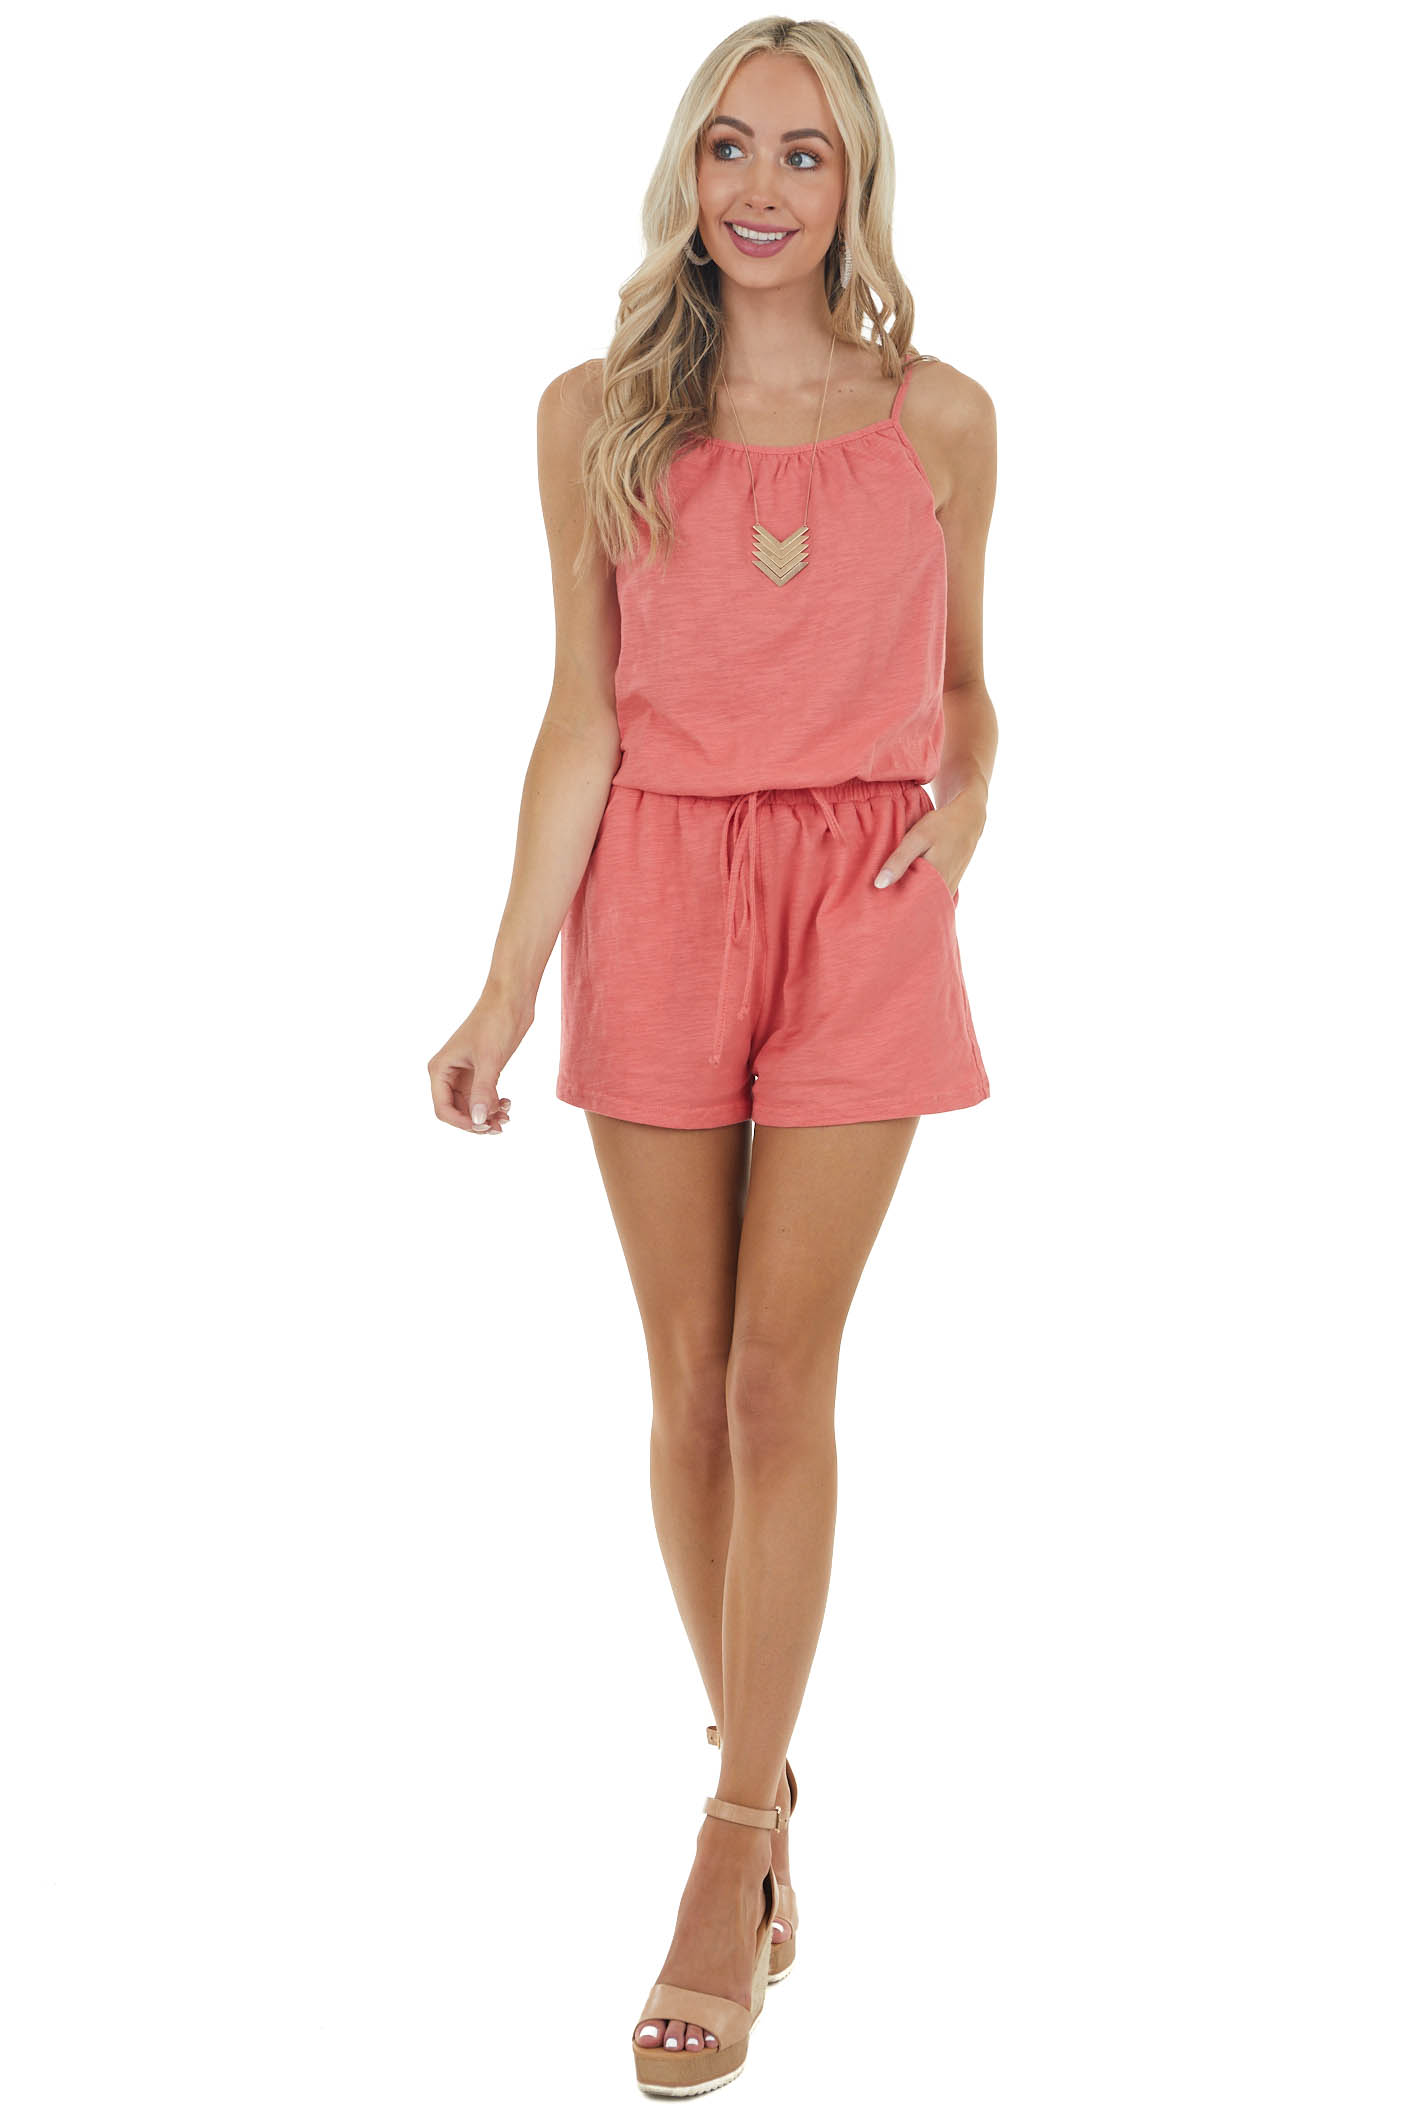 Coral Pink Cinch Waist Sleeveless Romper with Side Pockets